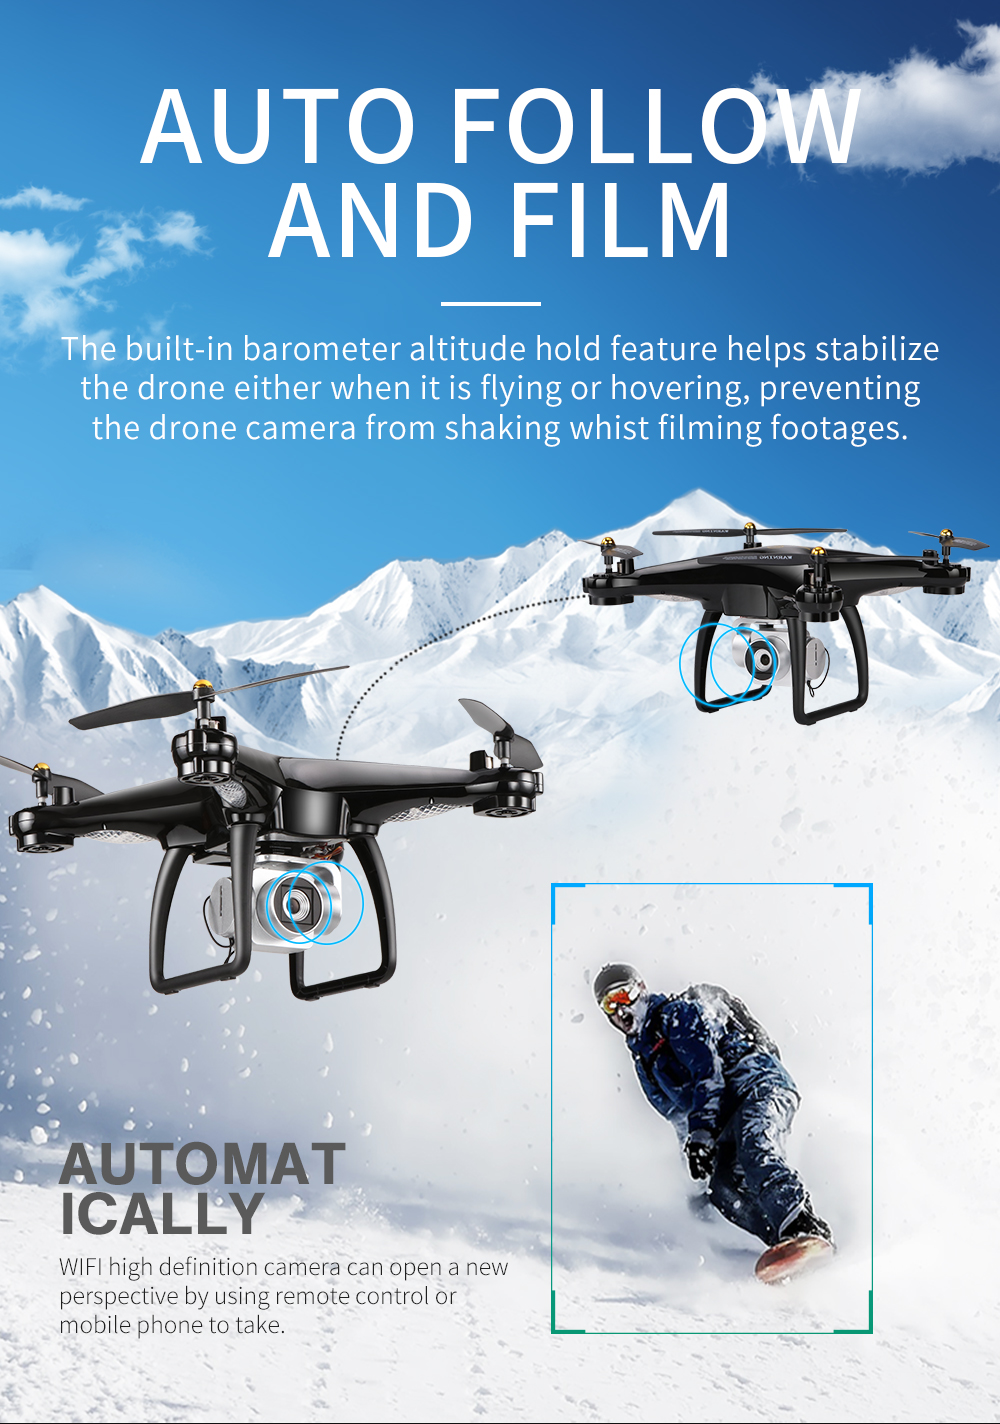 JJRC H68G GPS Drone With Camera 1080P HD 5G Wifi FPV Quadrocopter RC Helicopter Professional Dron Compass Auto Follow Quadcopter 13